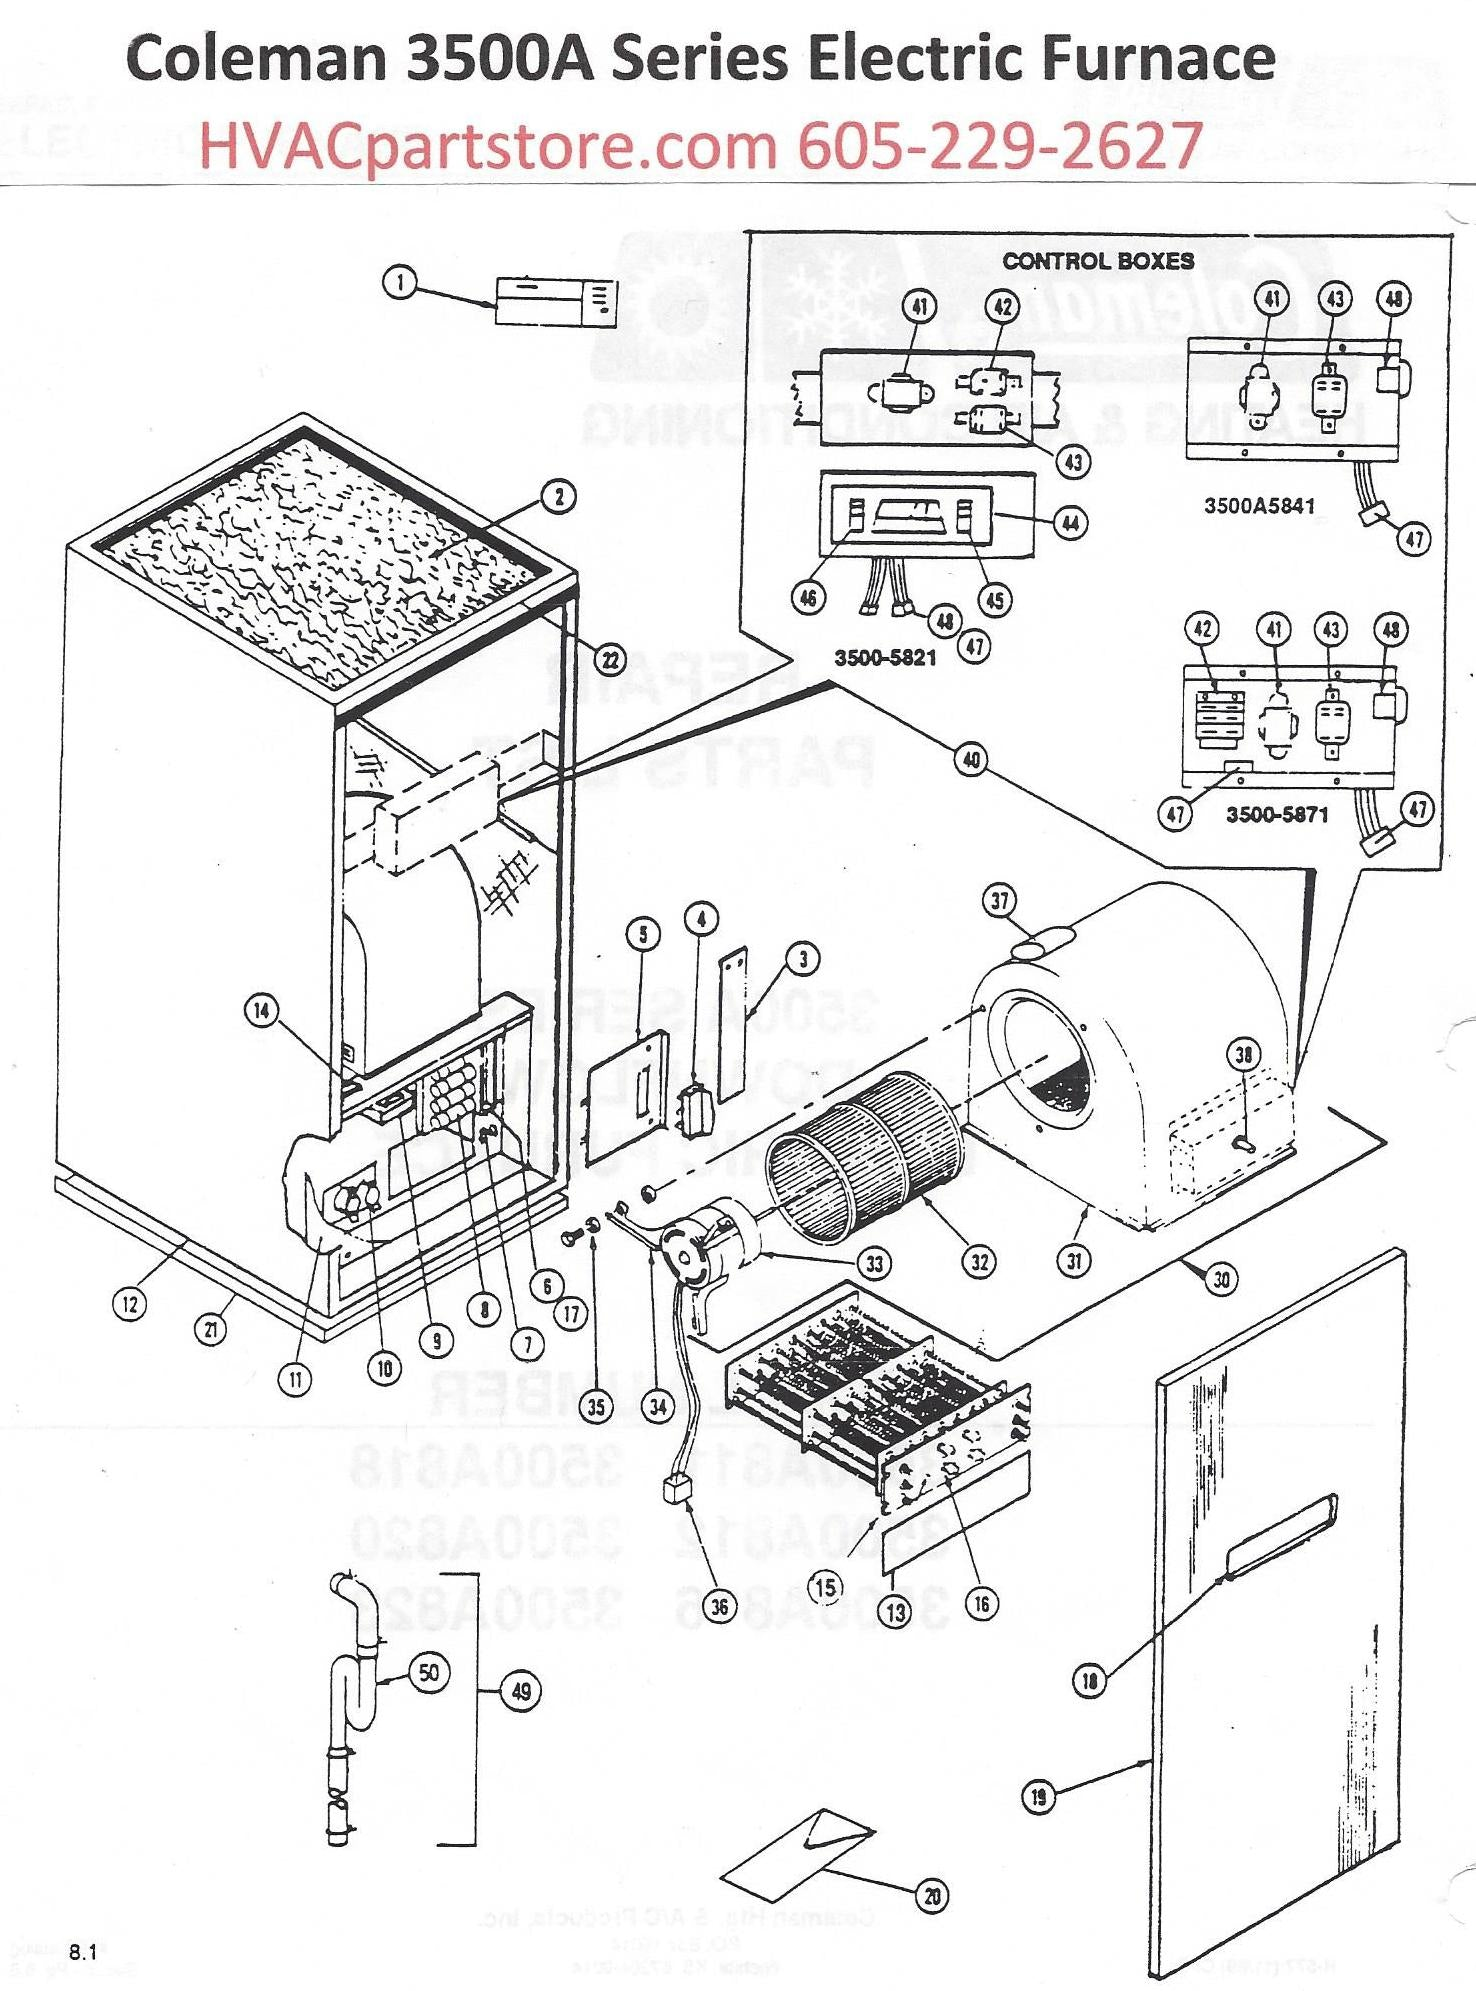 3500A816 Coleman Electric Furnace Parts – HVACpartstore on coleman evcon eb15b, coleman gas furnace diagram, coleman manufactured home furnace wiring, coleman furnace parts diagrams, coleman furnace manual, coleman electric furnace capacitor, coleman evcon schematic, heat sequencer schematic, coleman electric furnace parts, coleman evcon furnace troubleshooting,